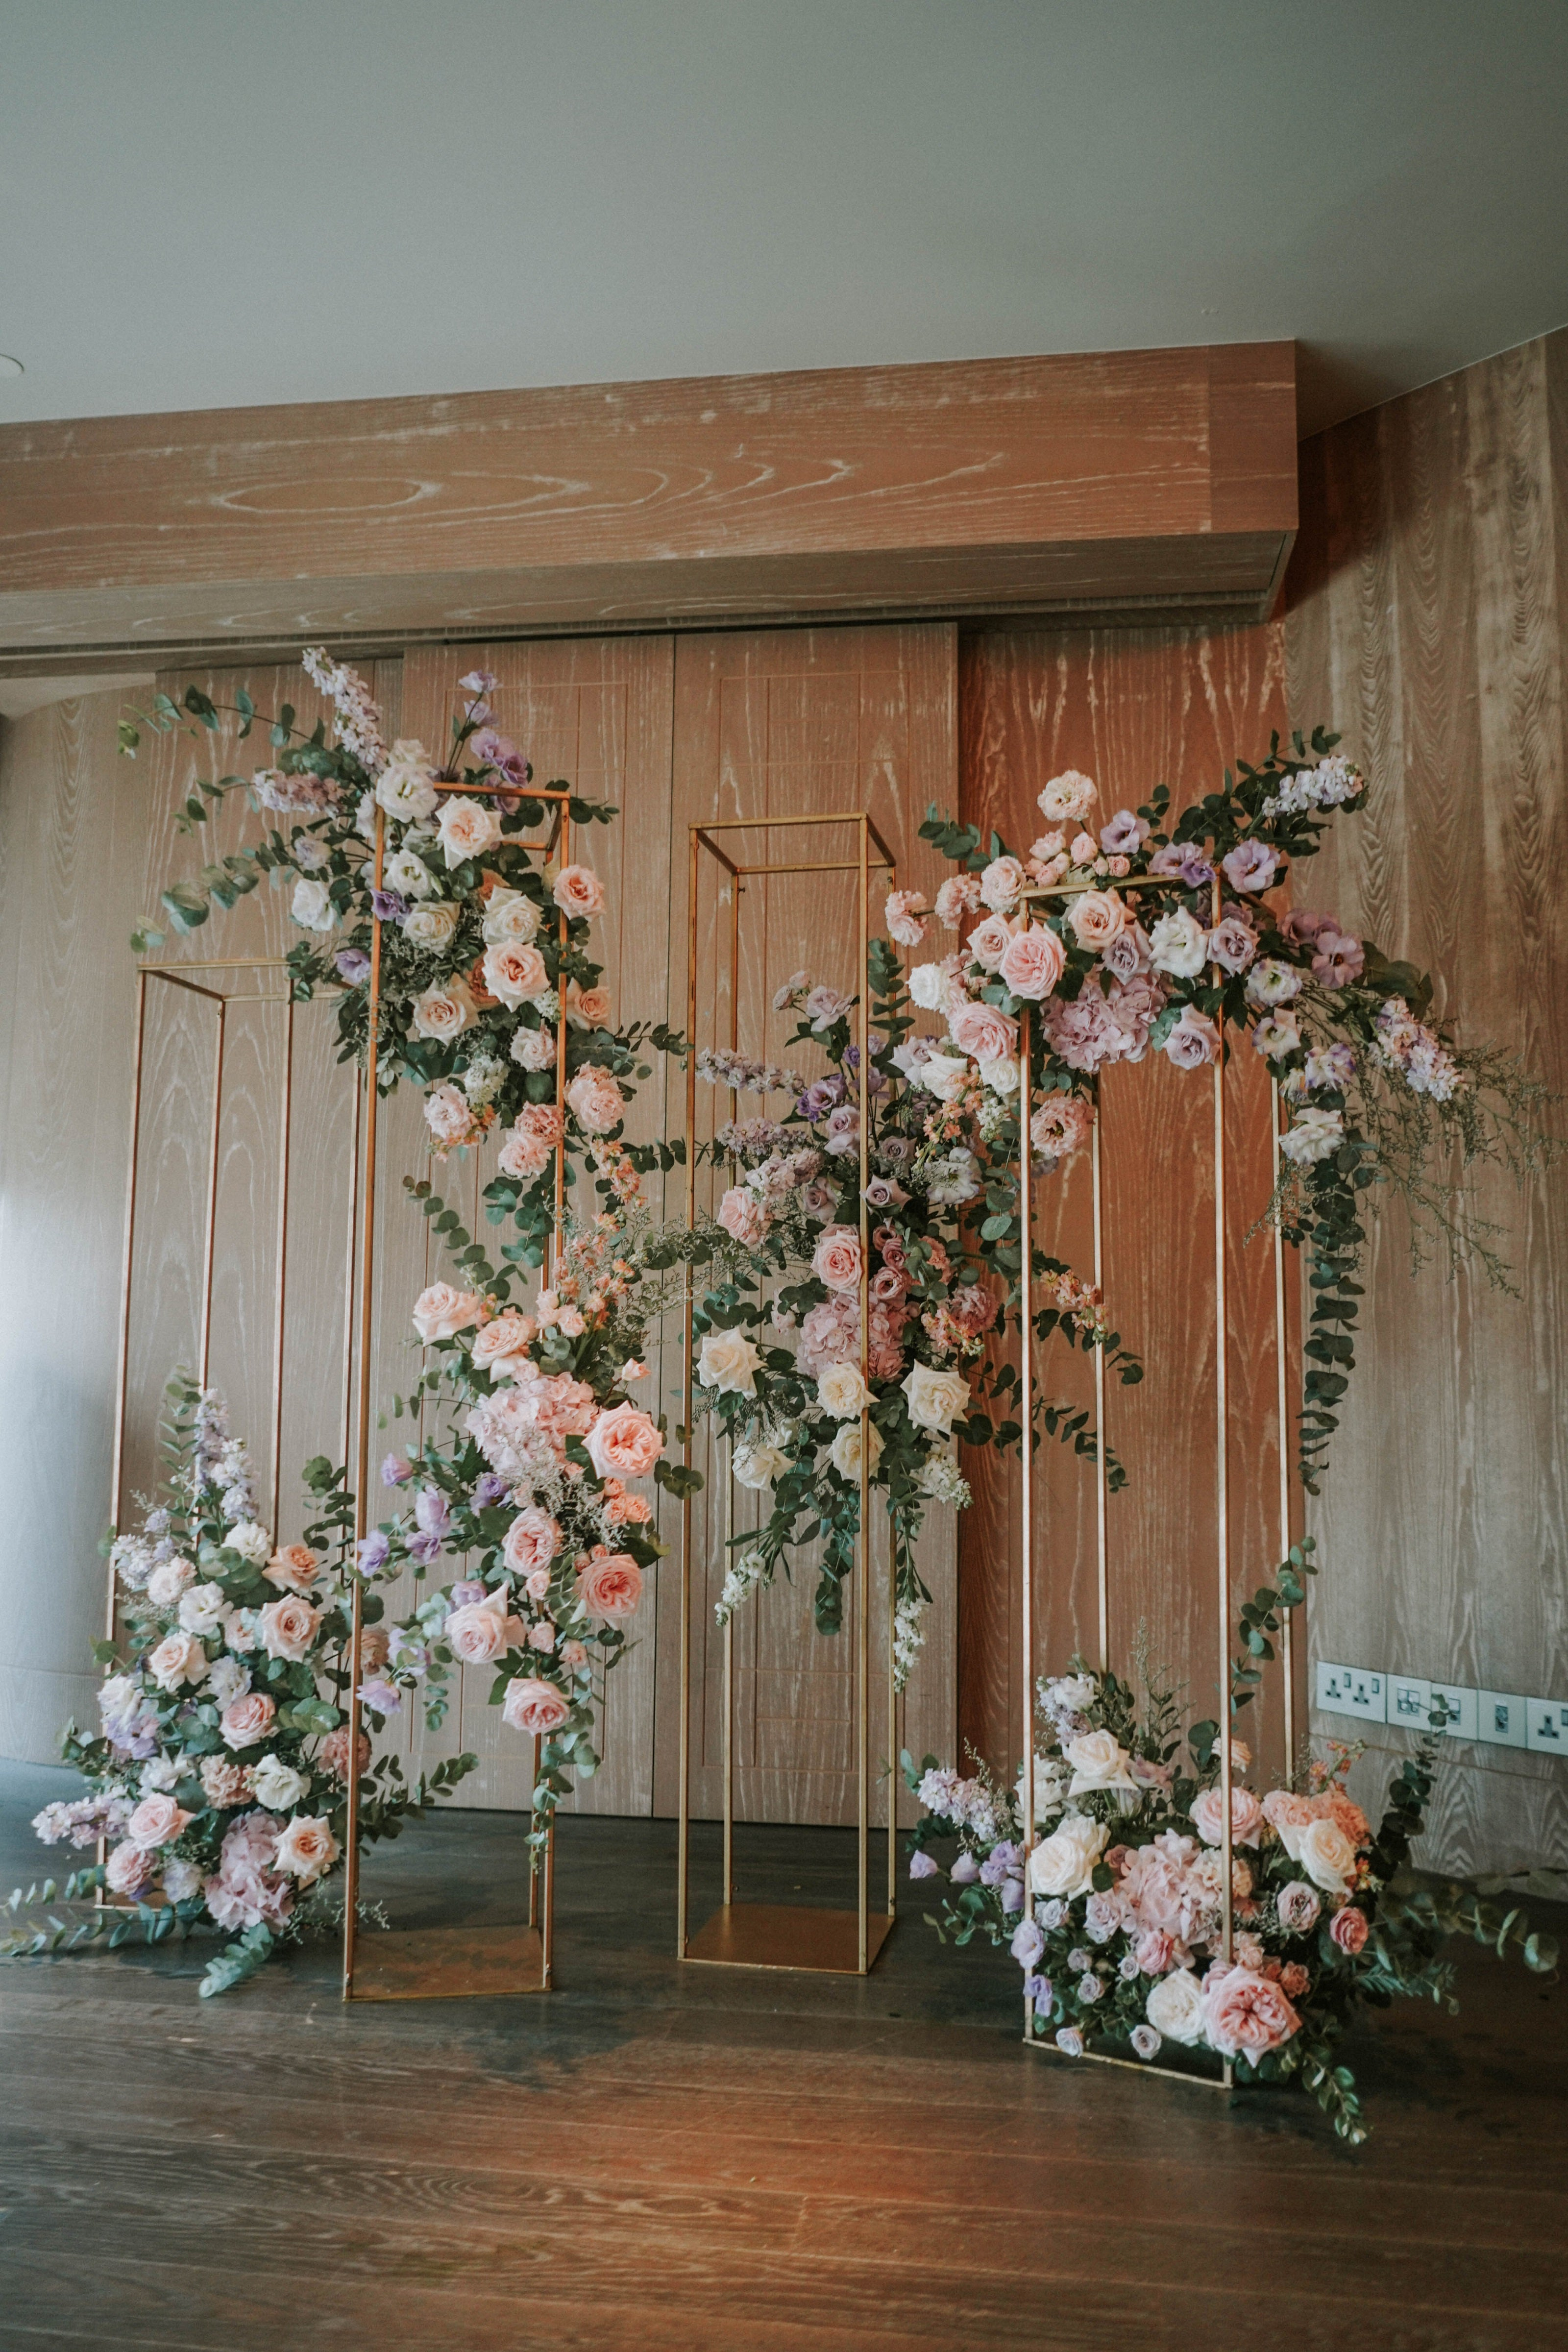 Free standing floral structures for backdrop and versatility with trailing eucalyptus leaves and roses, mattiolas, hydrangeas in shades of pink and purple